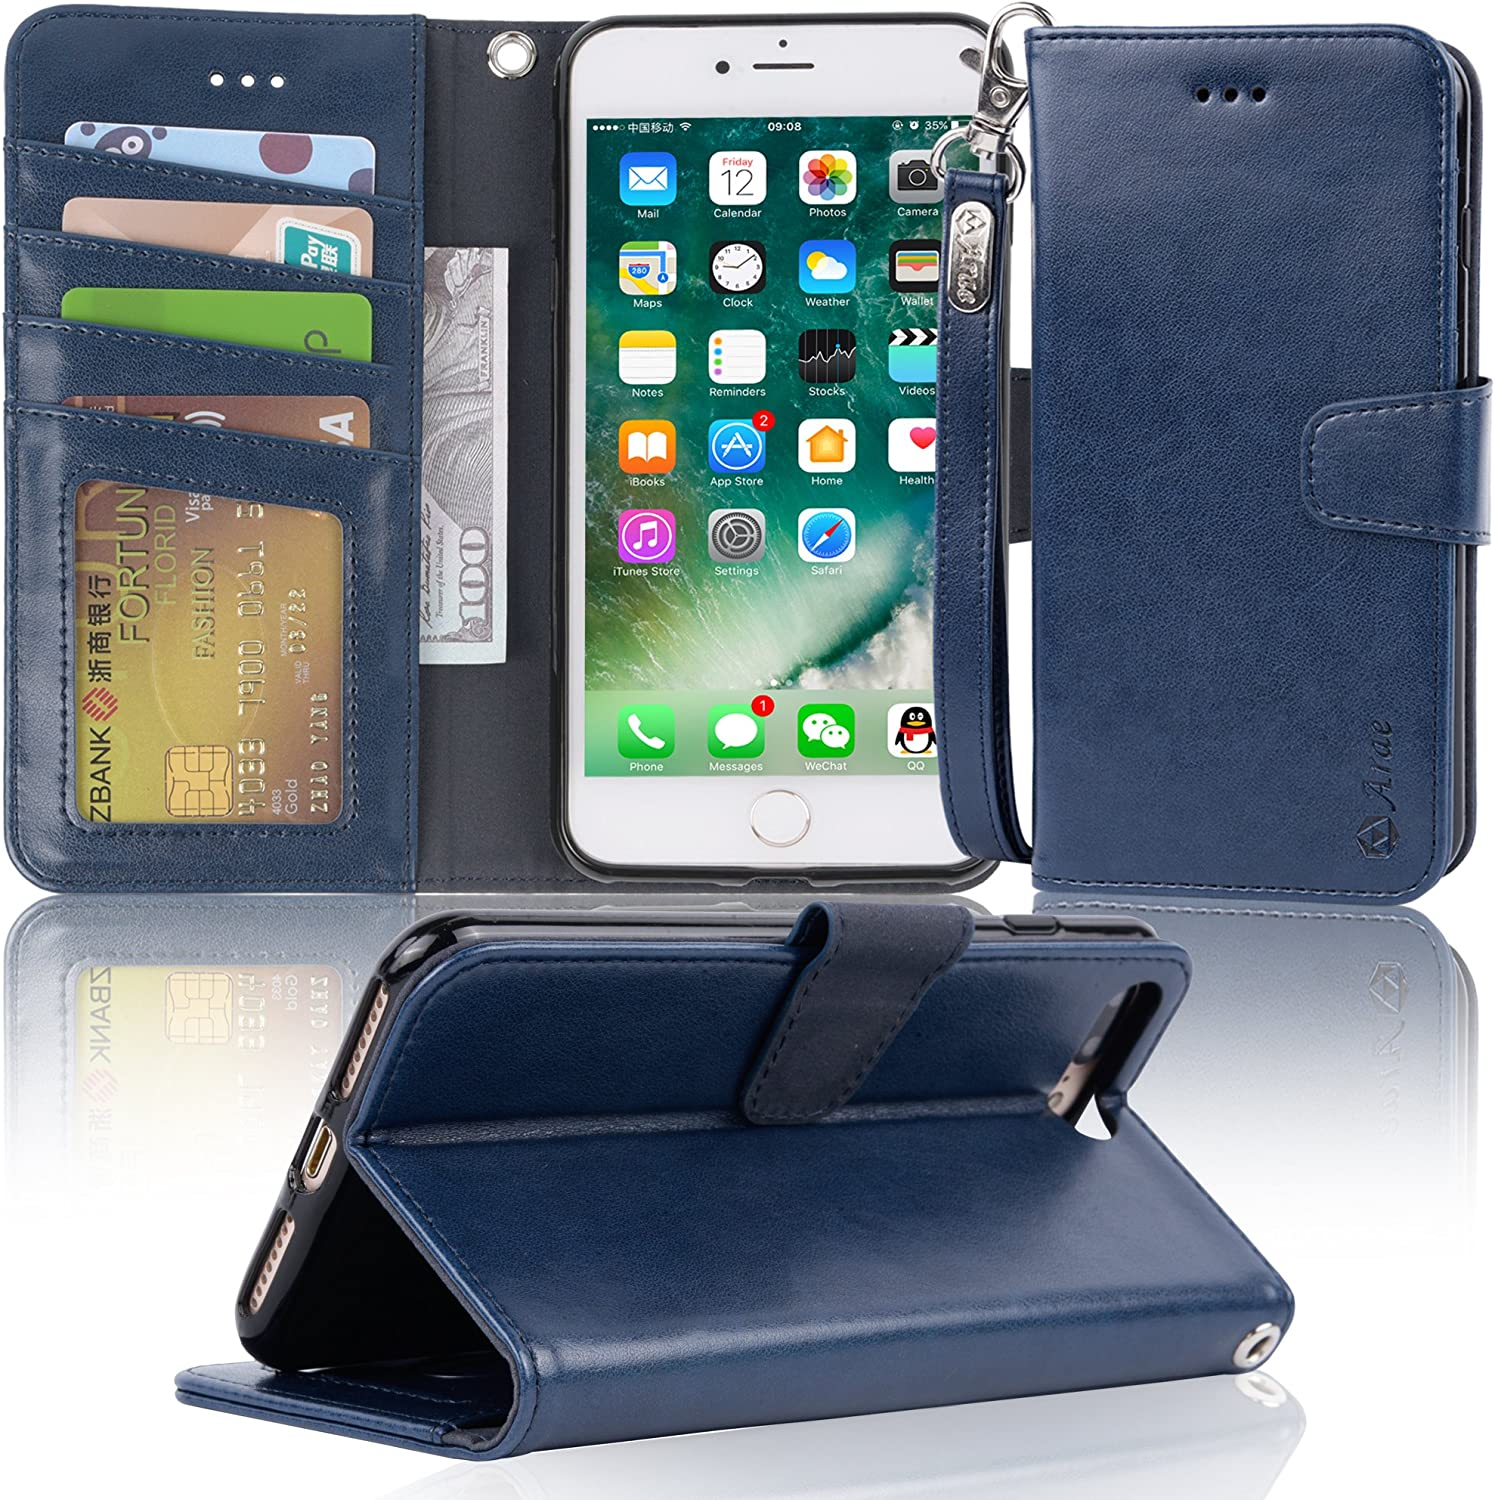 Arae Case for iPhone 7 Plus/iPhone 8 Plus, Premium PU Leather Wallet Case with Kickstand and Flip Cover for iPhone 7 Plus (2016) / iPhone 8 Plus (2017) 5.5 inch - navyblue